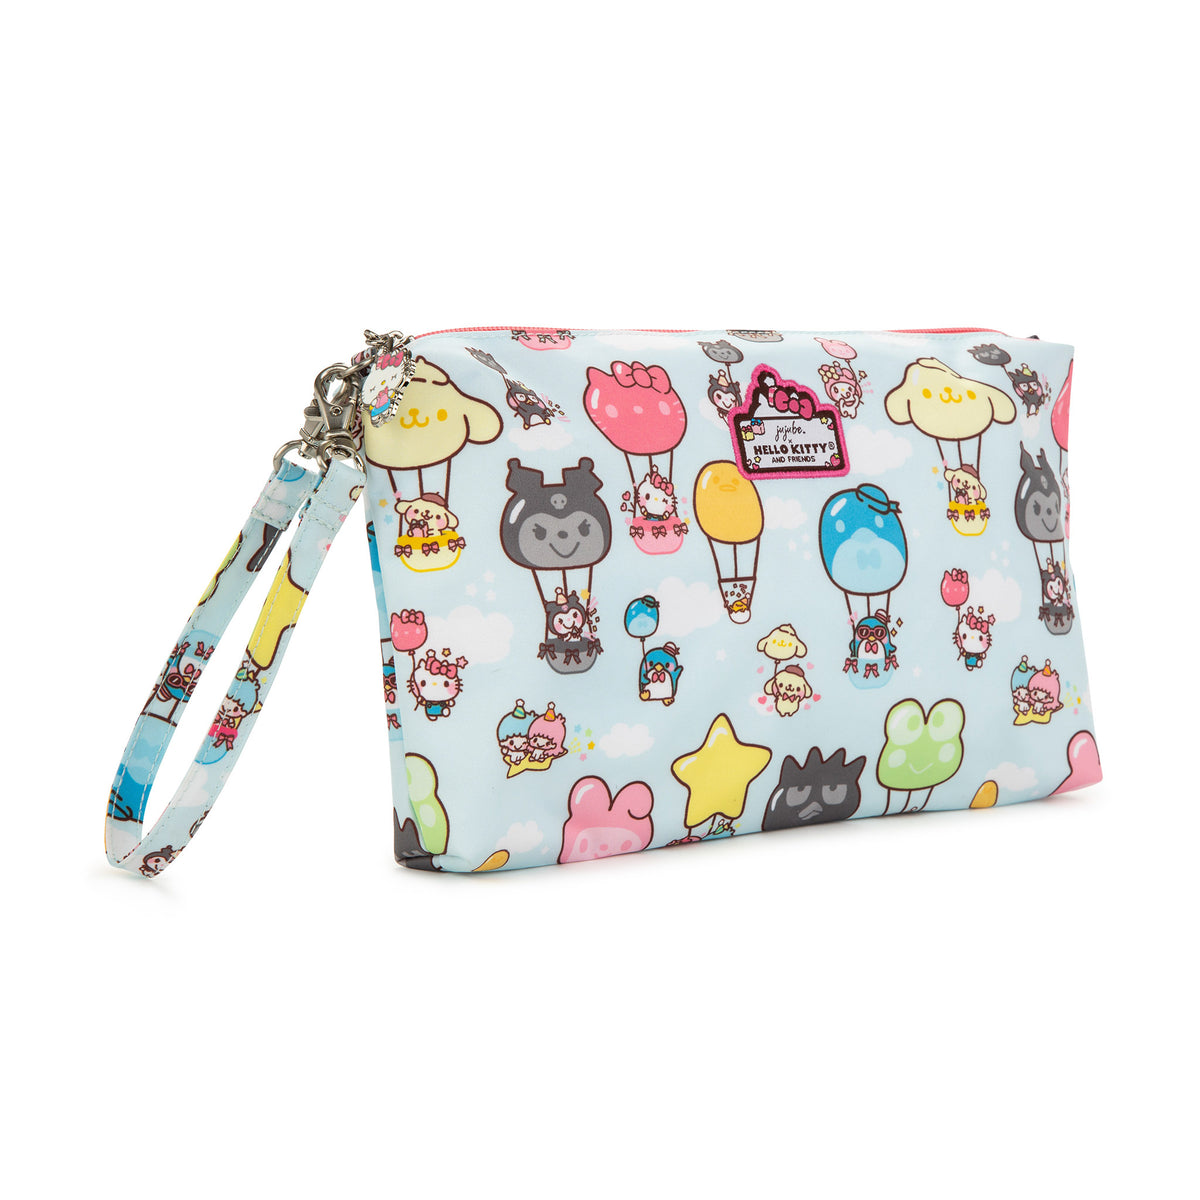 Sanrio x JuJuBe Party In The Sky Be Quick Bag